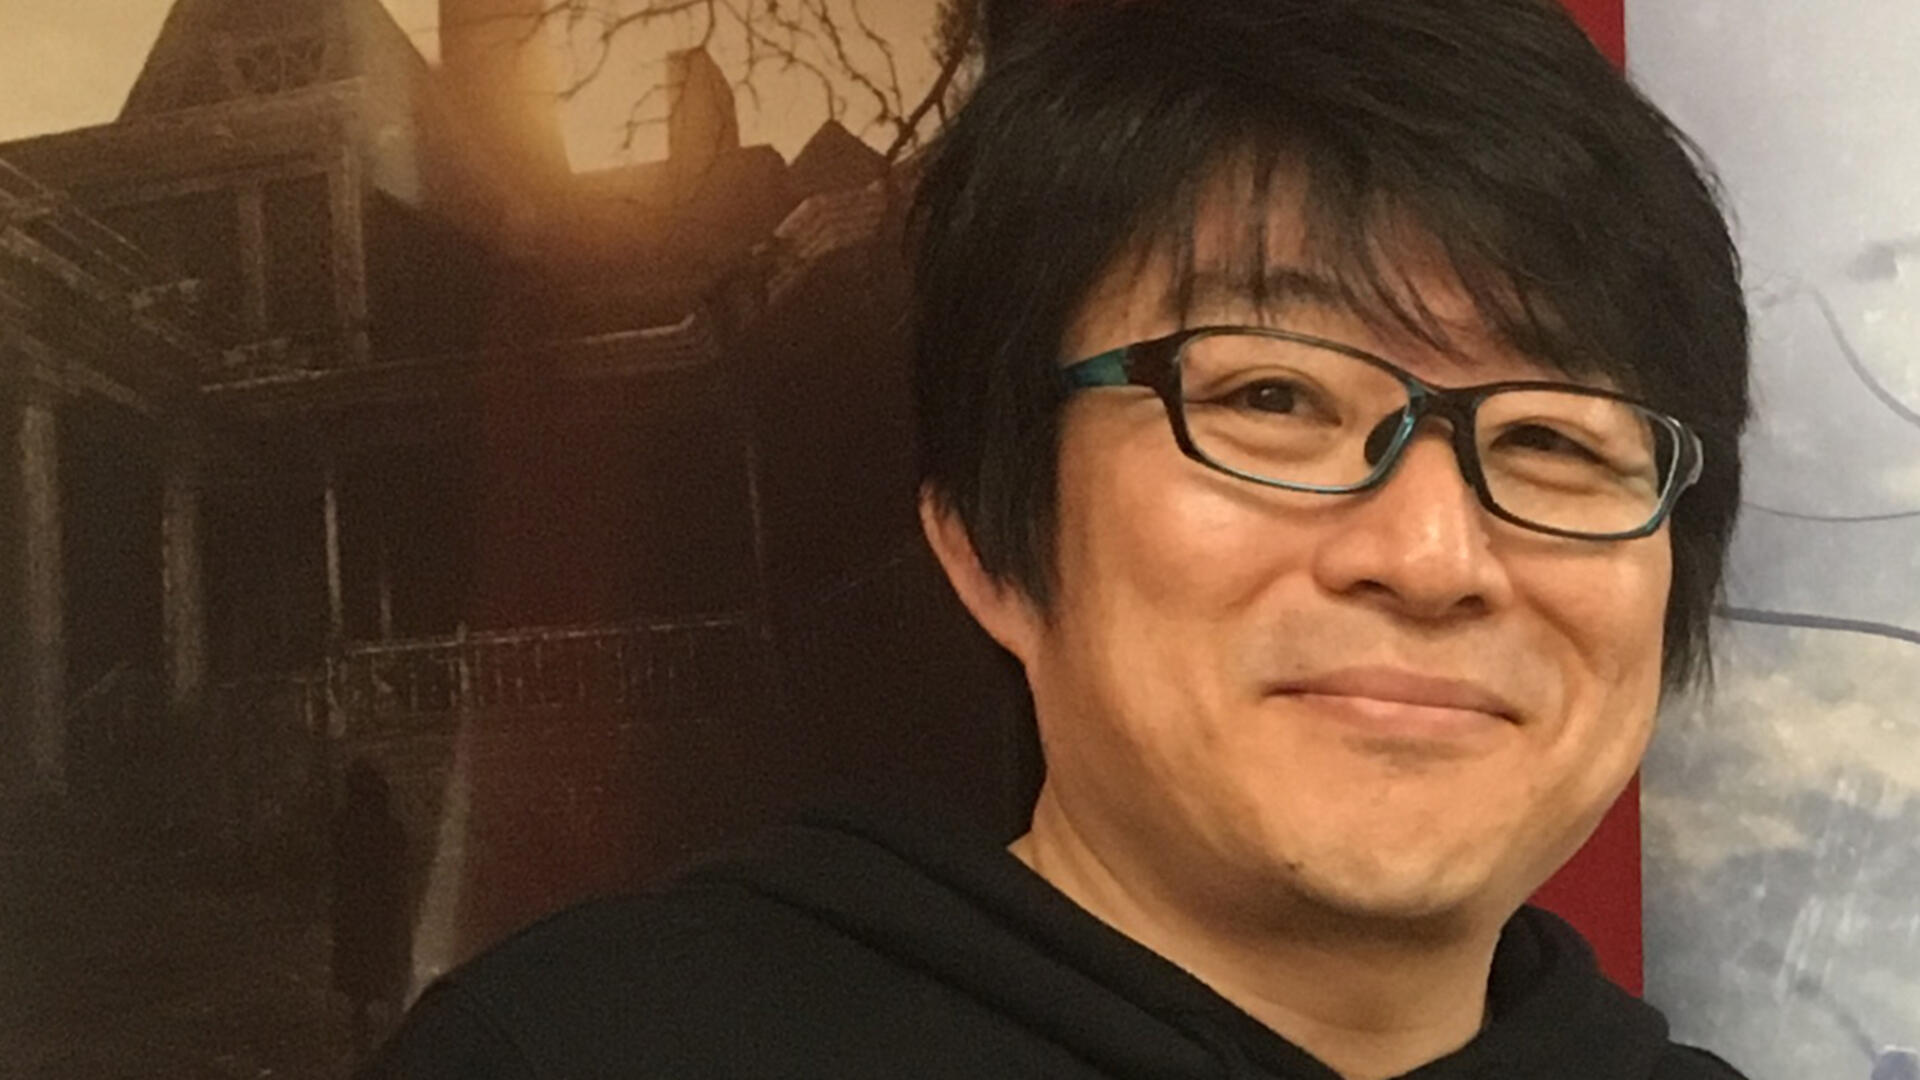 """I Thought V Would Be Much More Divisive:"" Hideaki Itsuno on the Making of Devil May Cry 5 and Its Success"